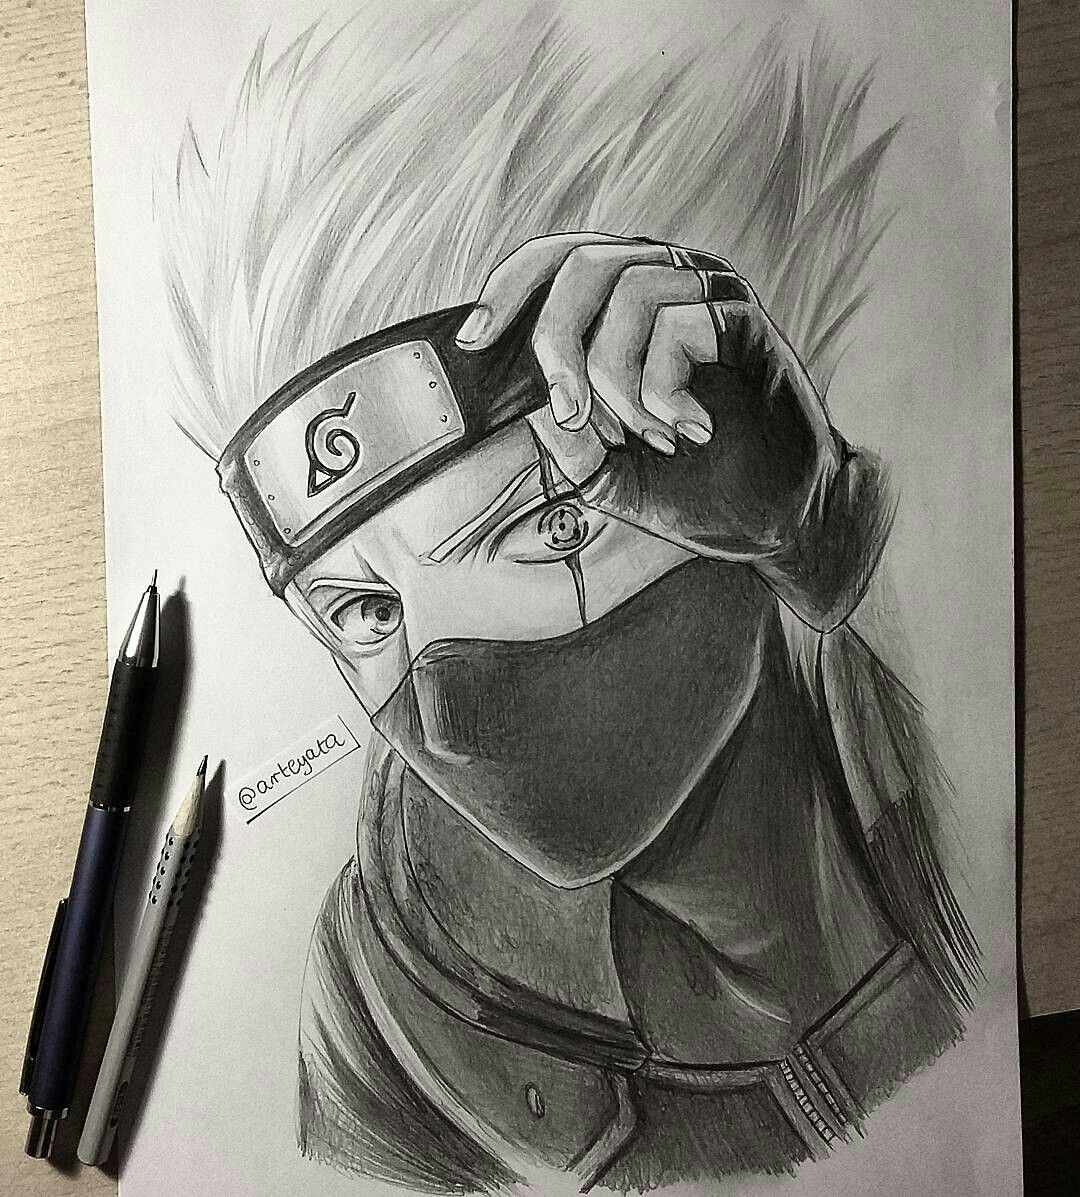 My Drawing Of Kakashi Hatake Anime Y Manga 스케치 만화 Y